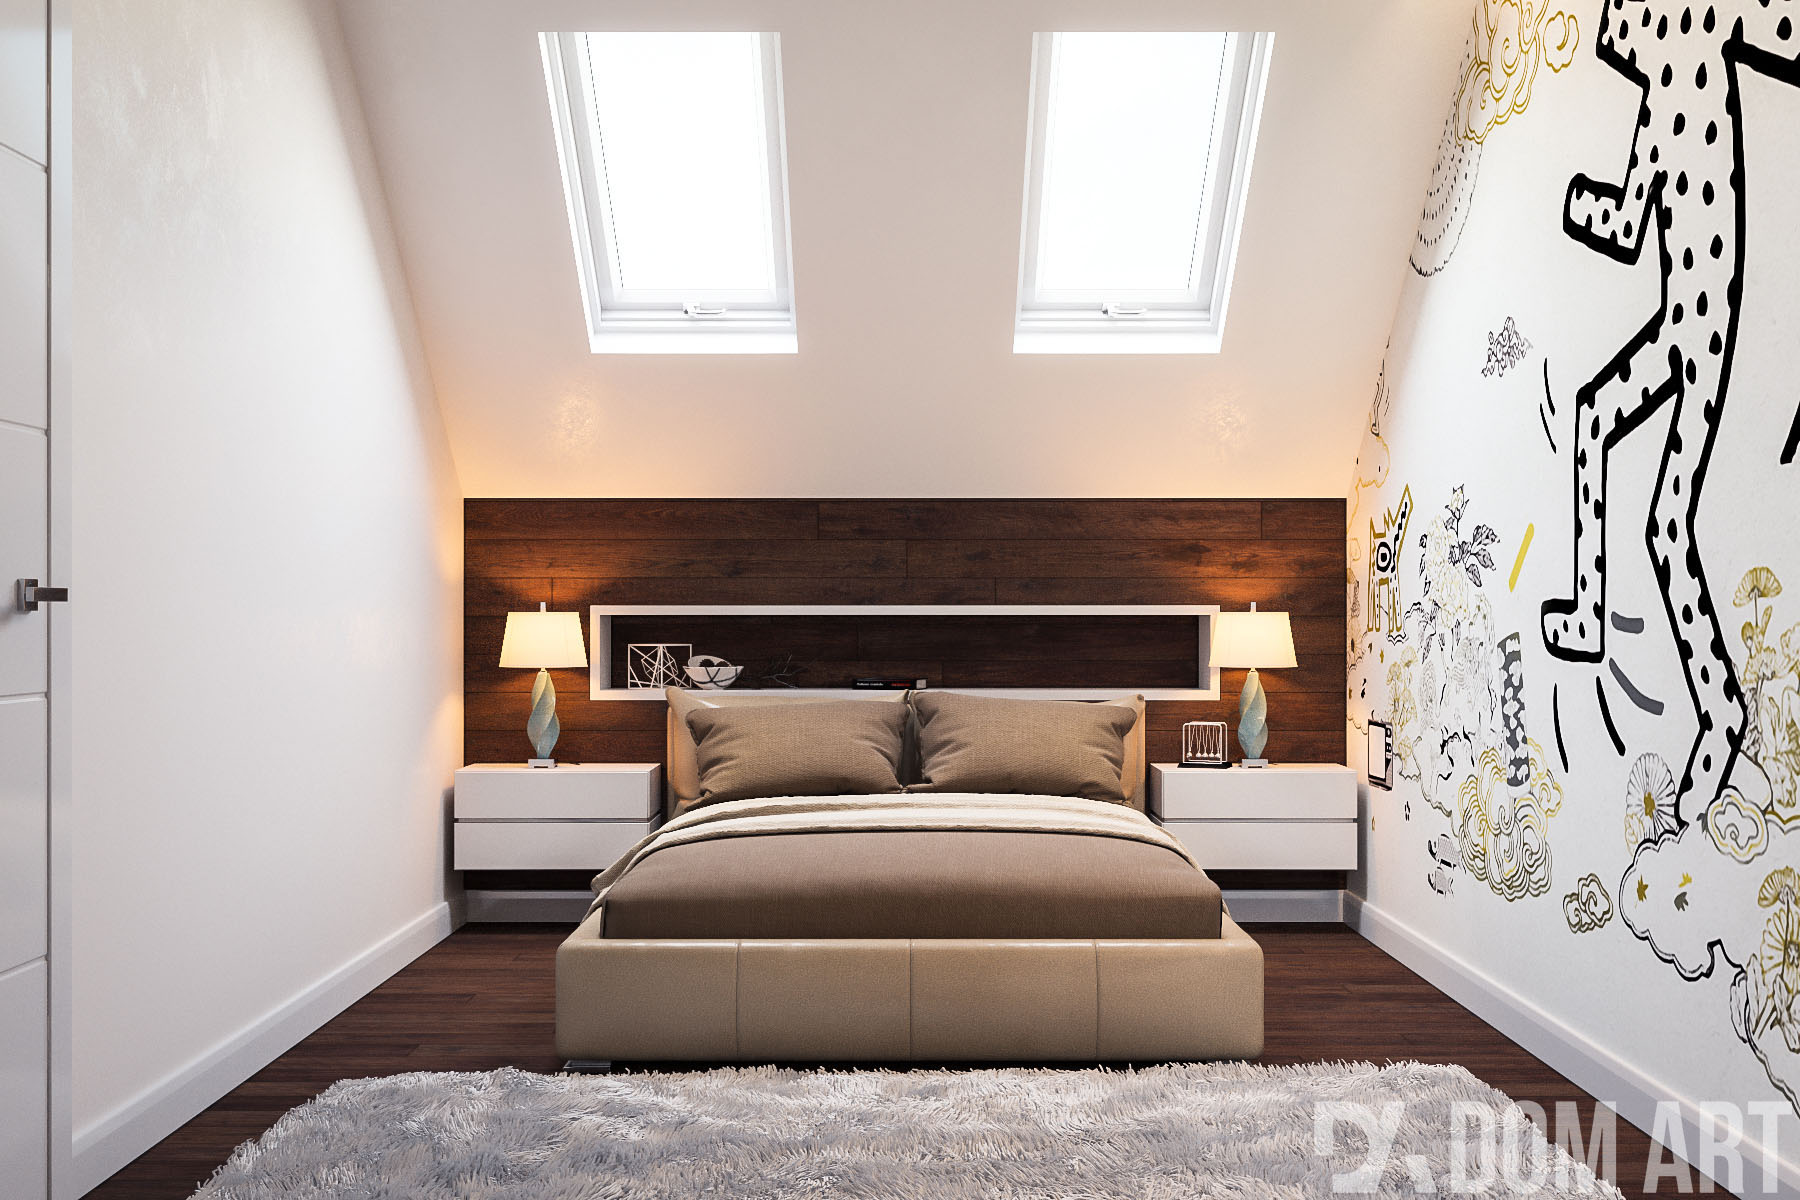 Dom Art- Mastering the Art of Residential and Commercial Design_2 commercial design Dom Art: Mastering the Art of Residential and Commercial Design Dom Art Mastering the Art of Residential and Commercial Design 5